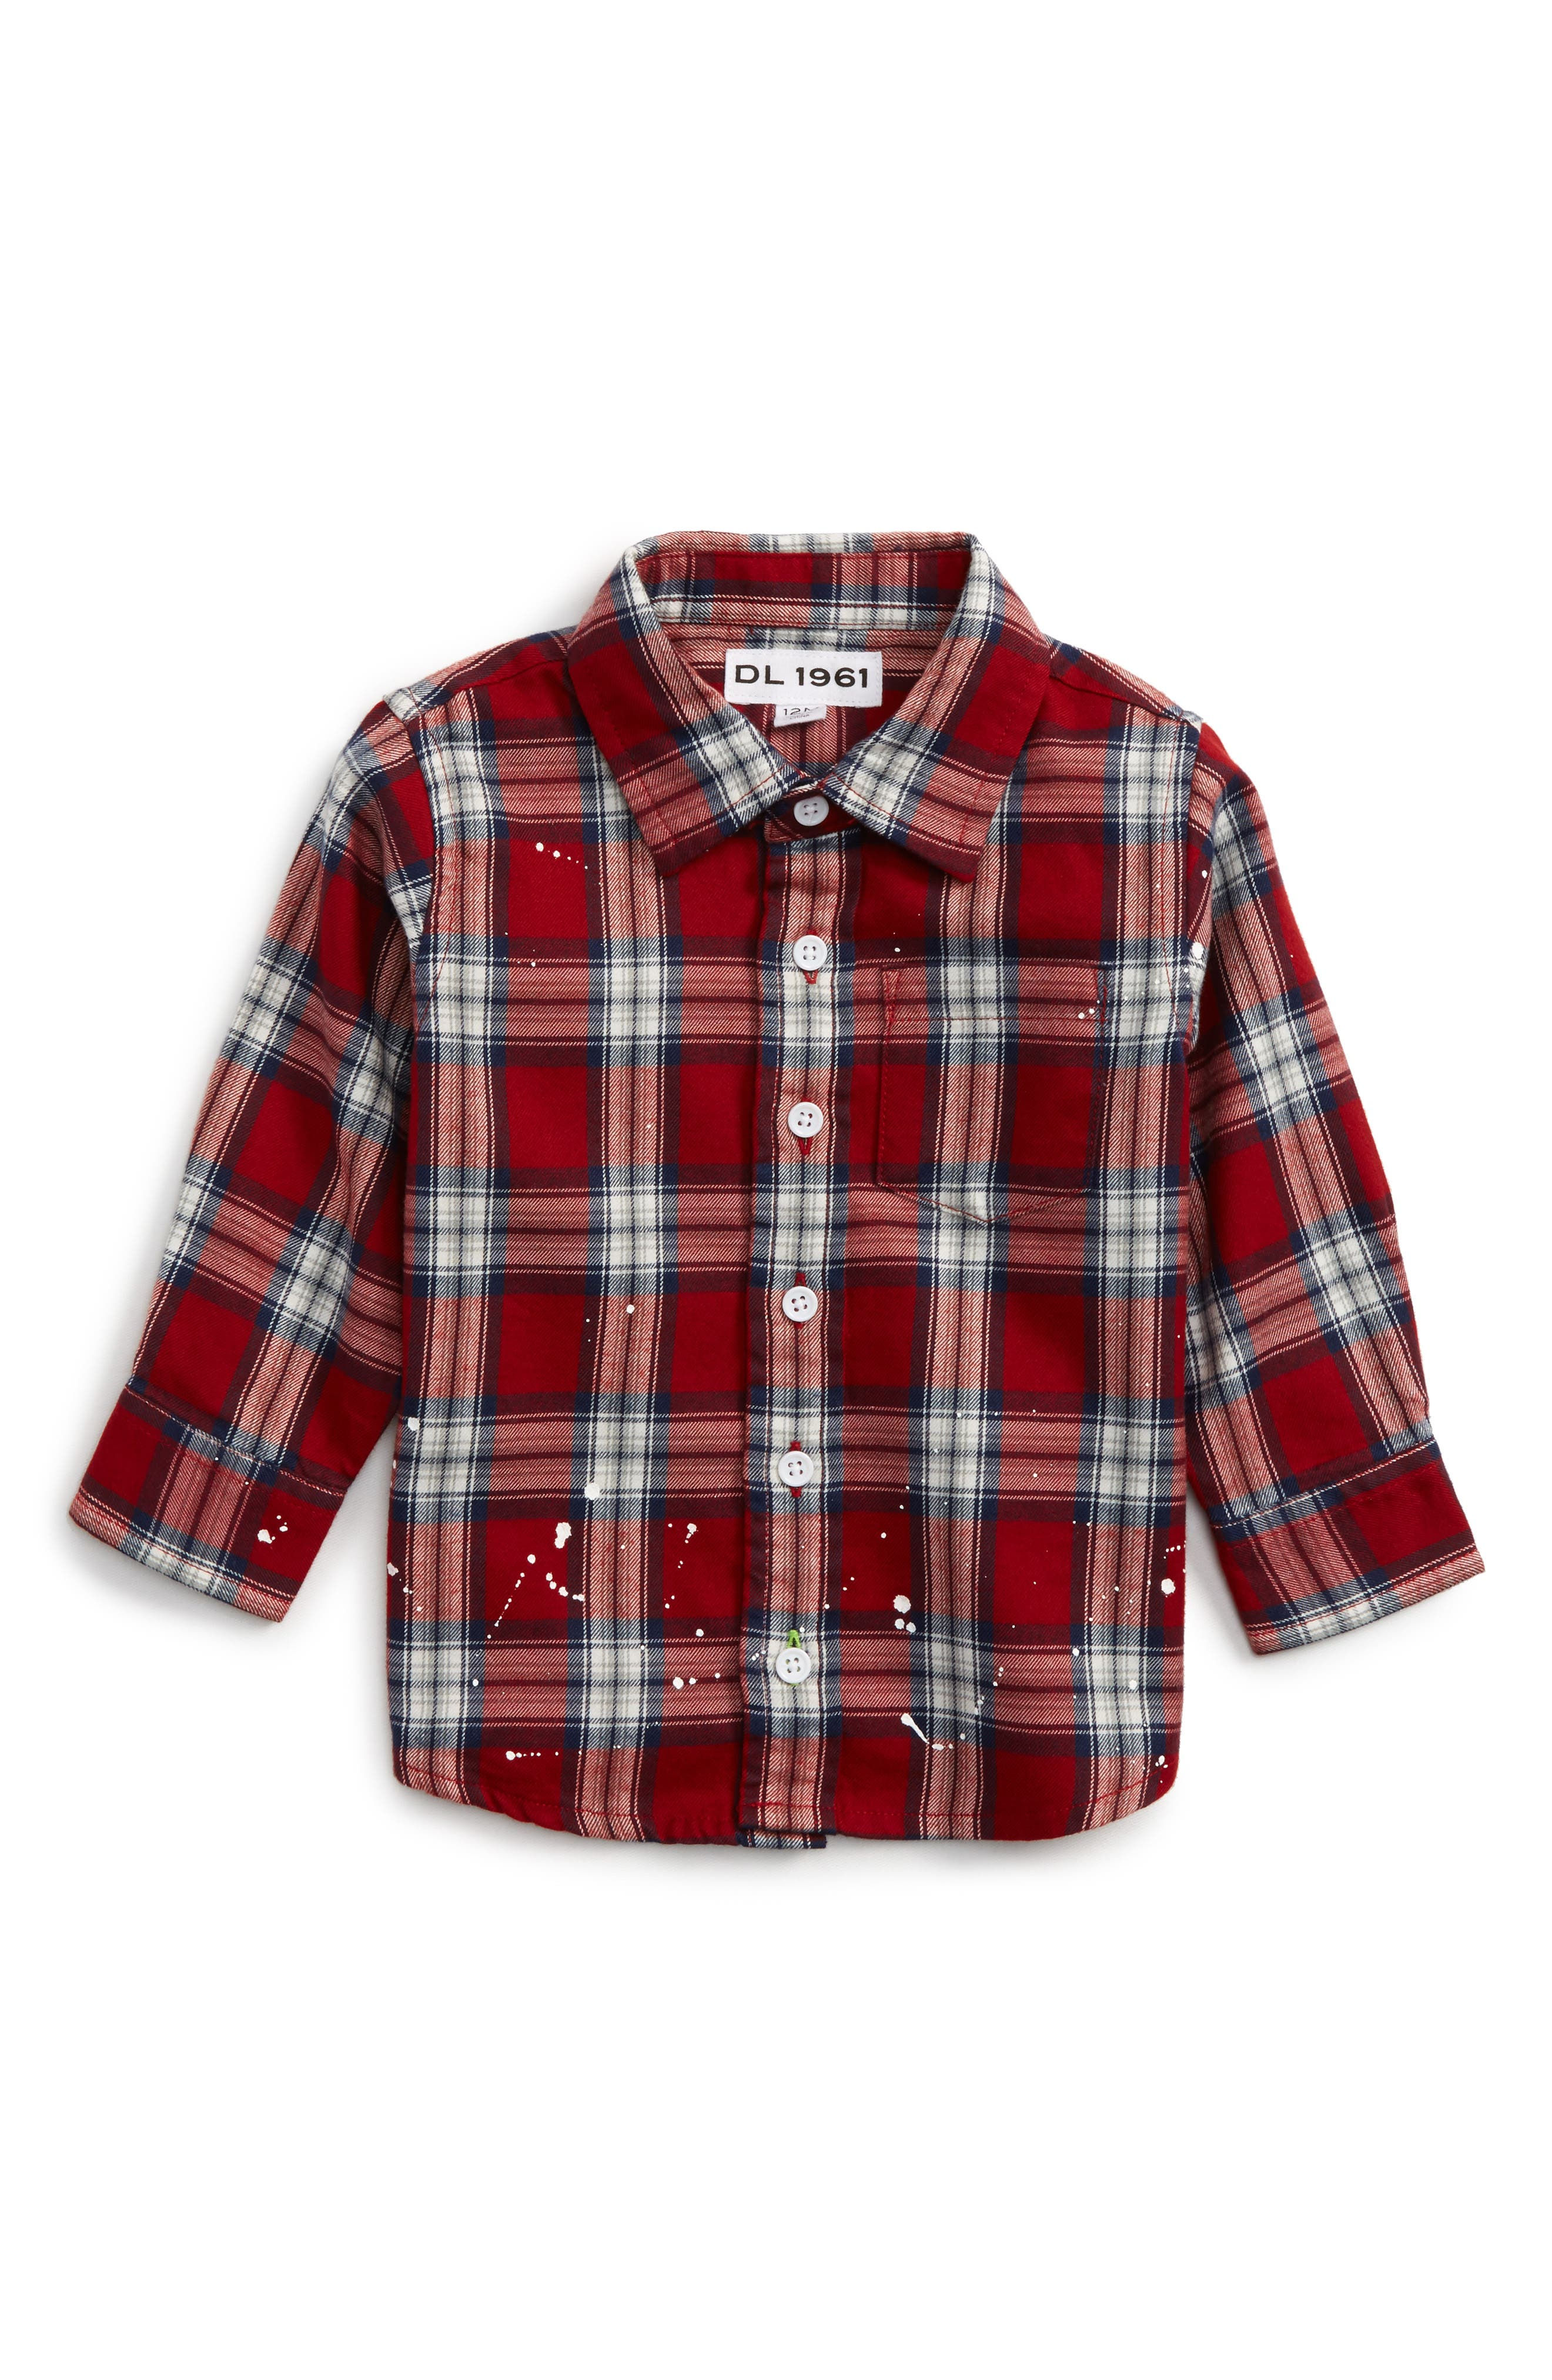 DL1961 Plaid Shirt